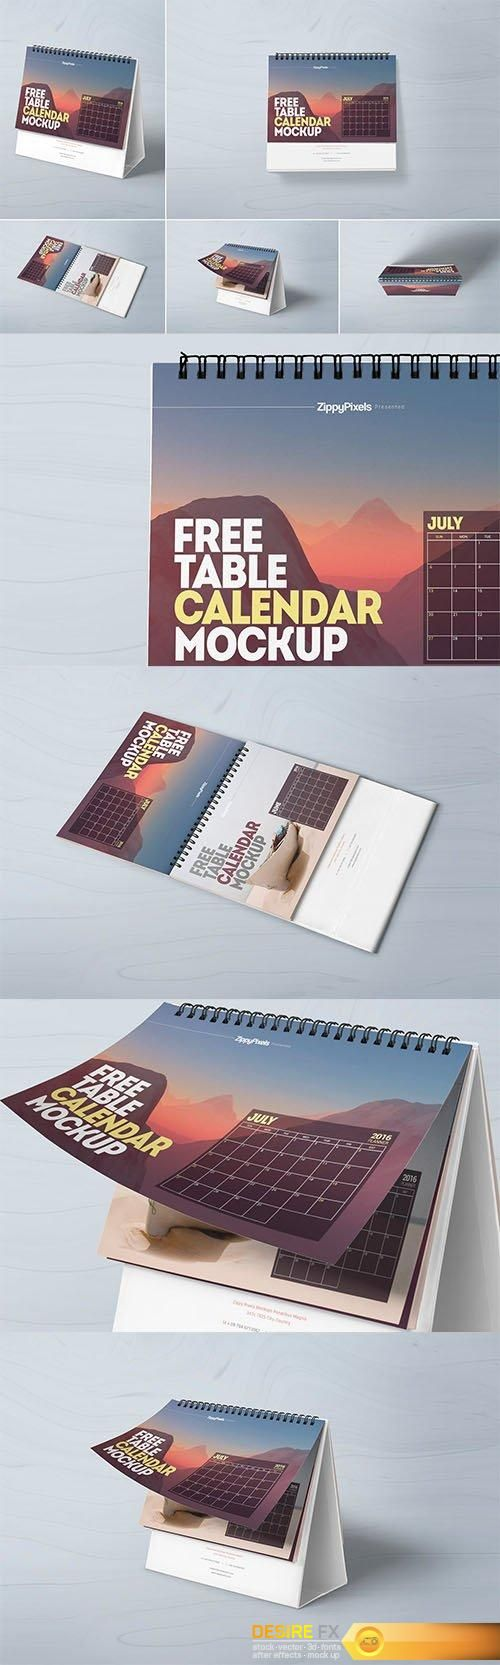 Desire FX | 5 Table Calendar Mockup | psd keys | Table